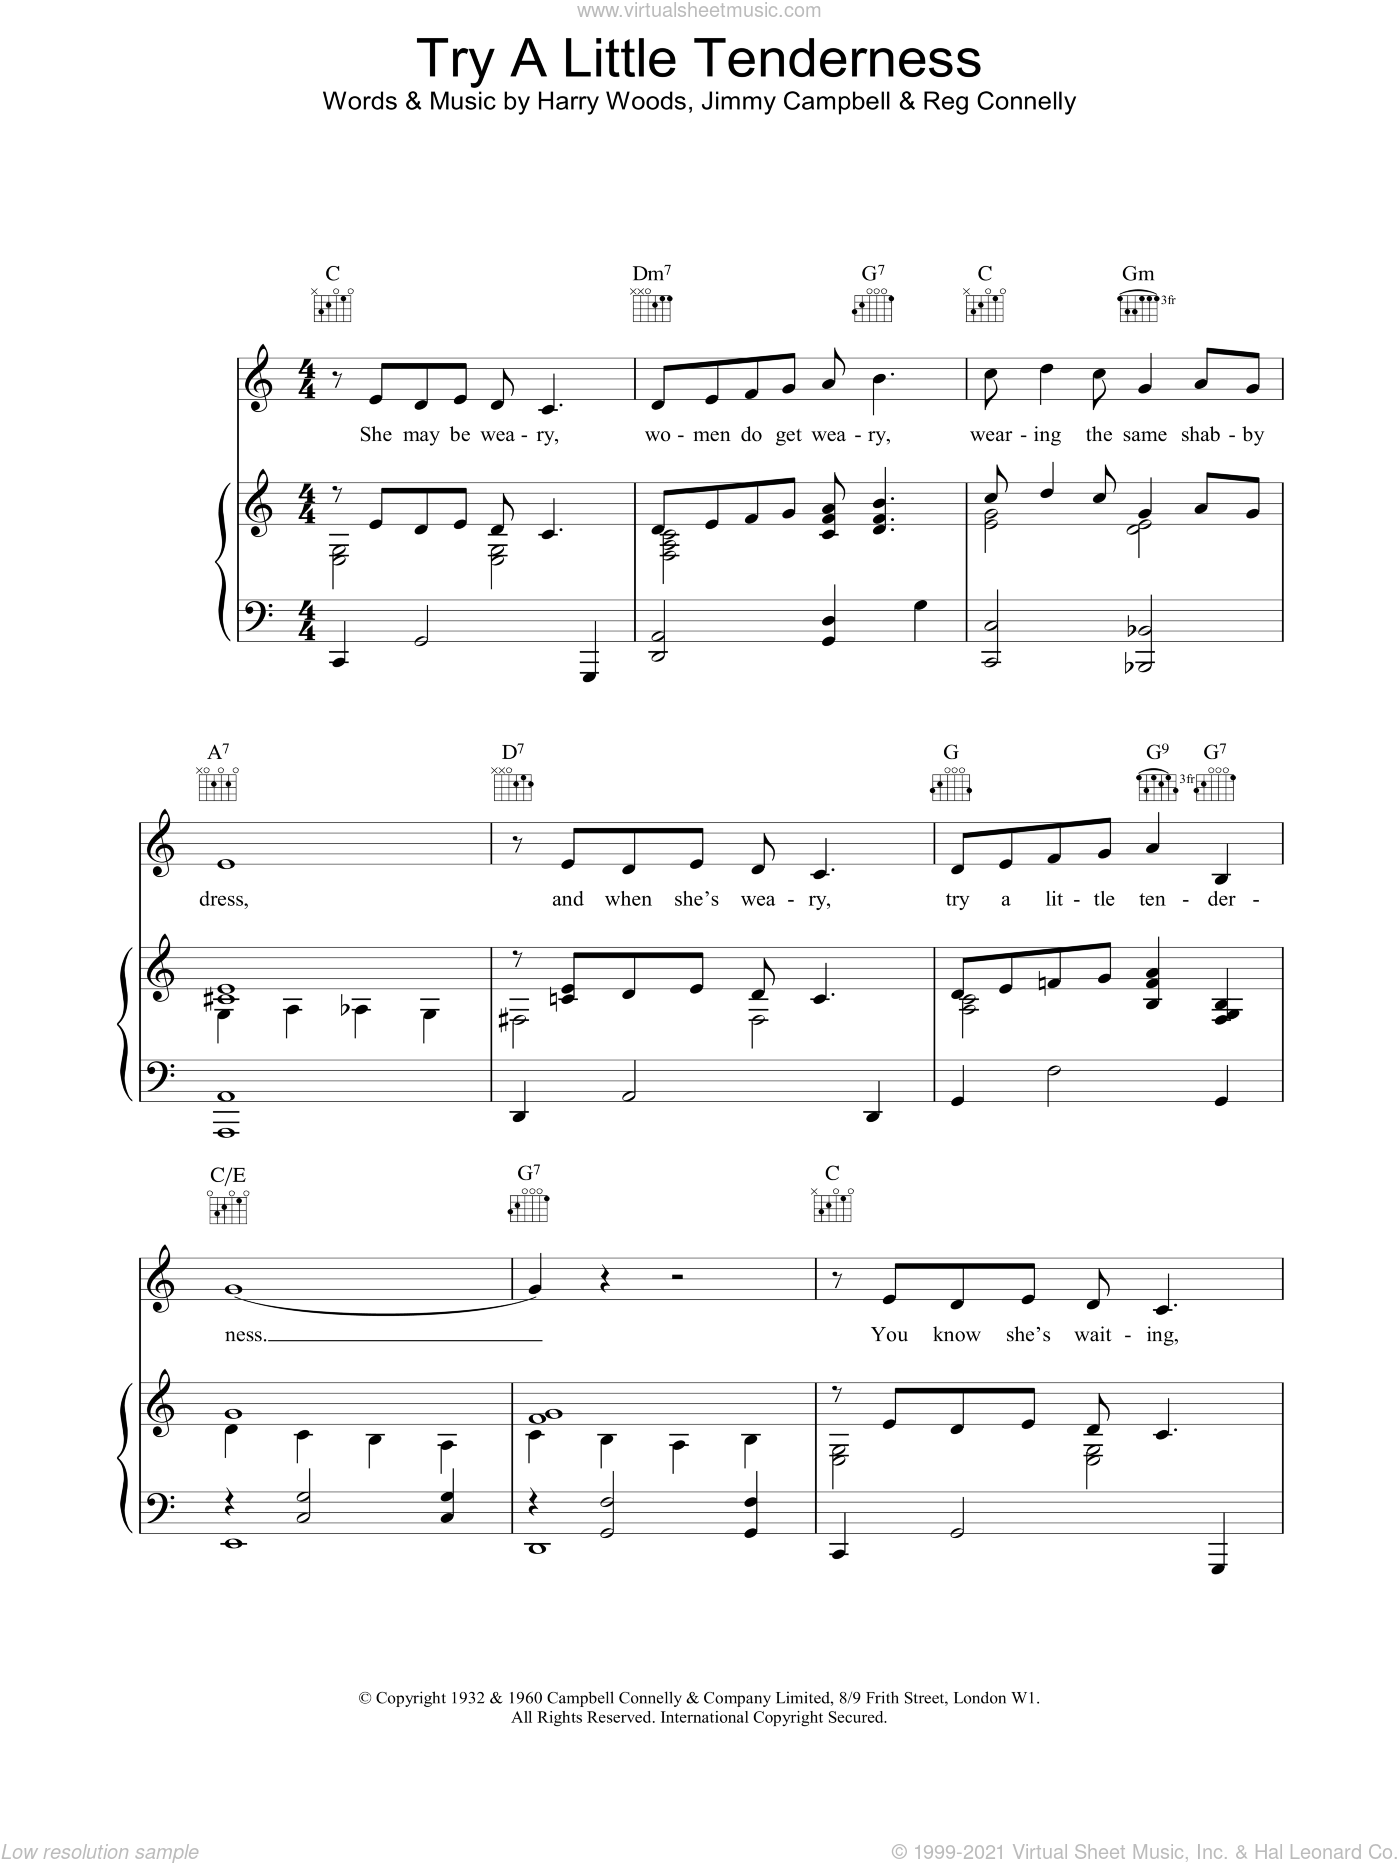 Try A Little Tenderness sheet music for voice, piano or guitar by The Commitments